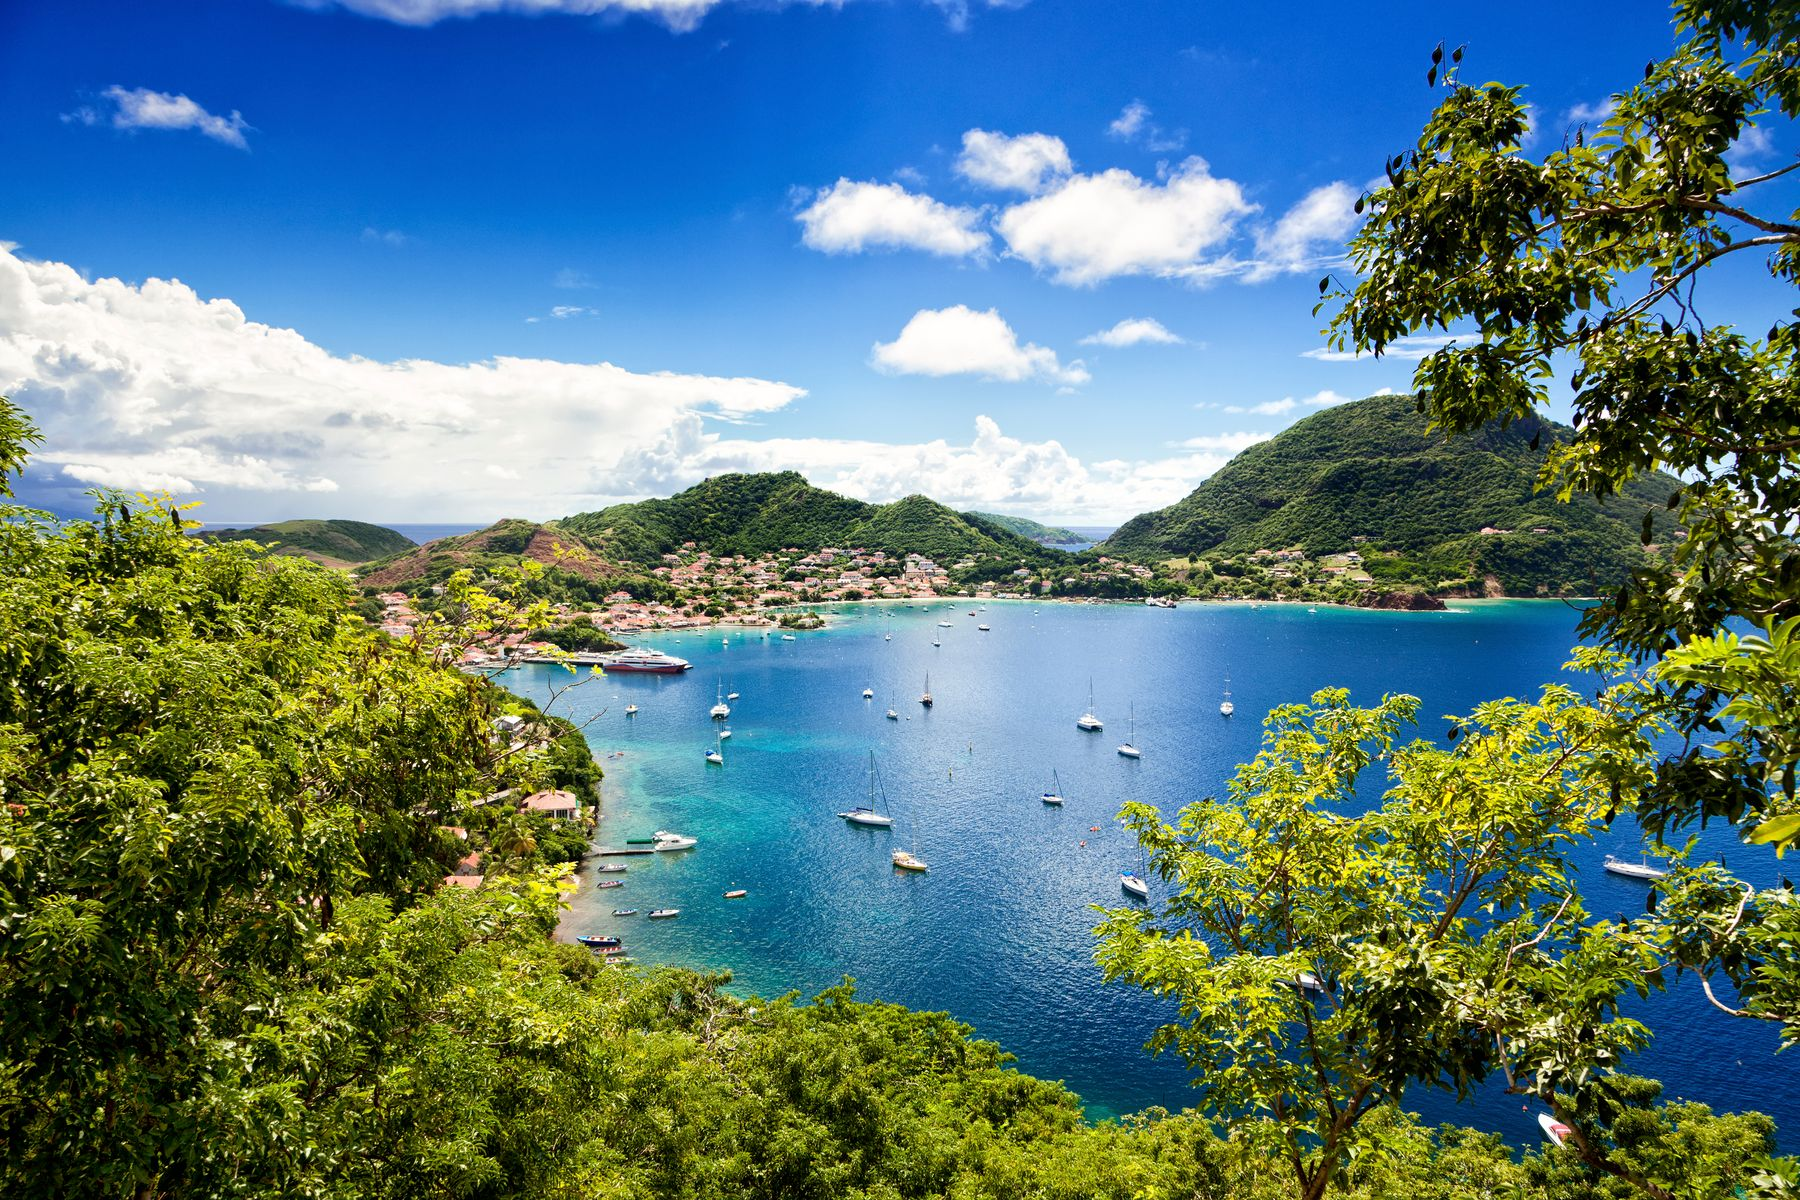 a picturesque bay of water surrounded by lush green mountains, a great sunny destination for a December vacation